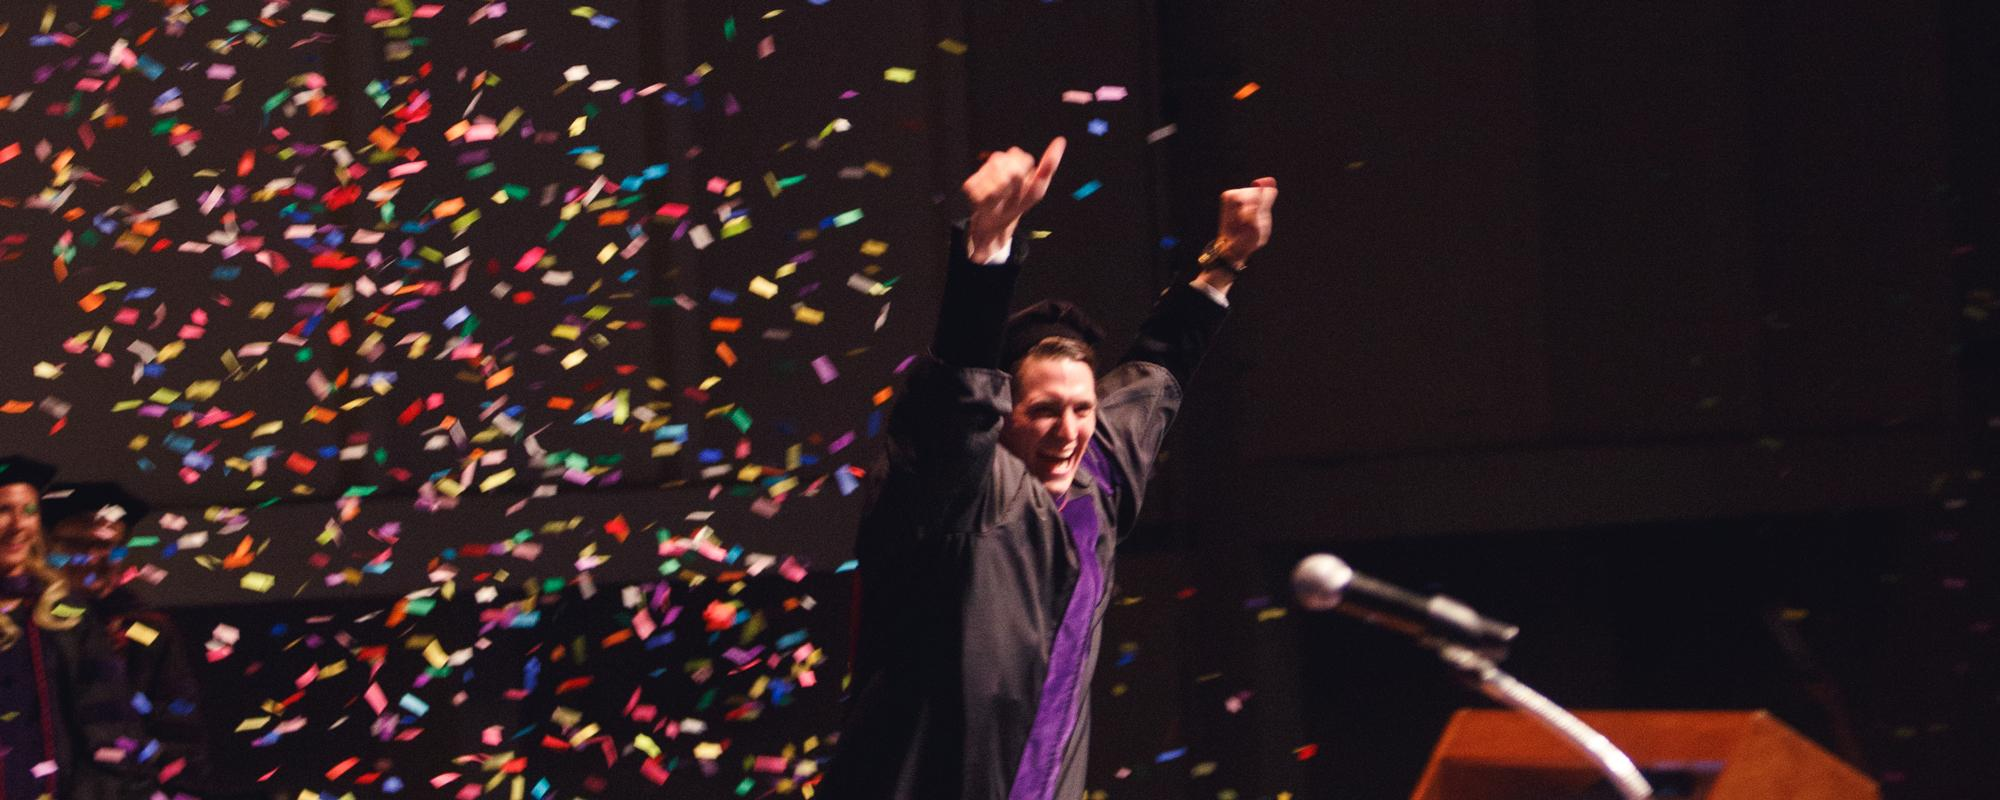 University of Arizona Law JD graduate celebrating with confetti